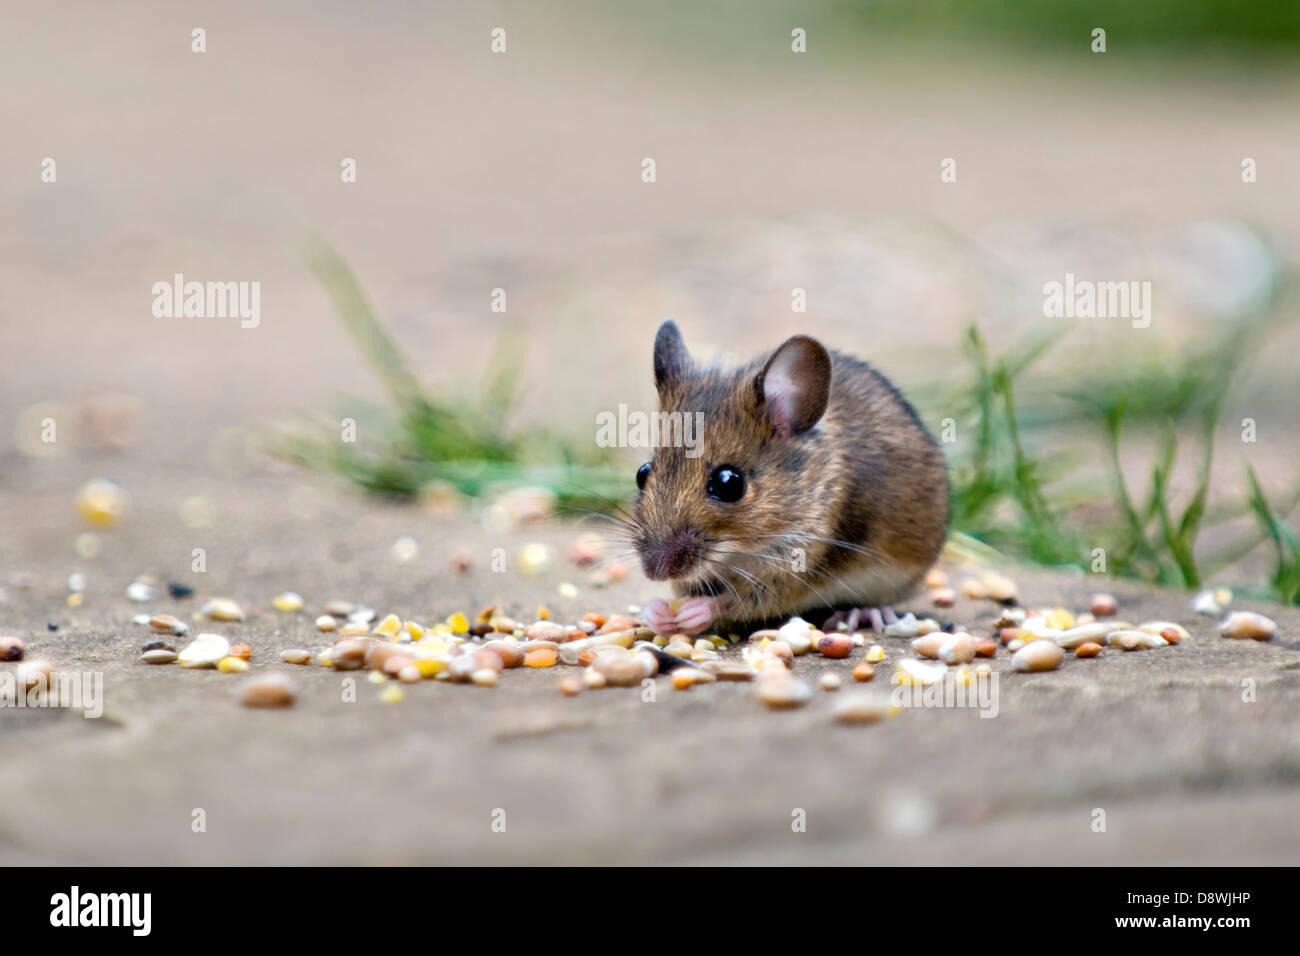 Wood mouse, also known as field or long-tailed mouse eating bird seed on patio in garden with out of focus background - Stock Image